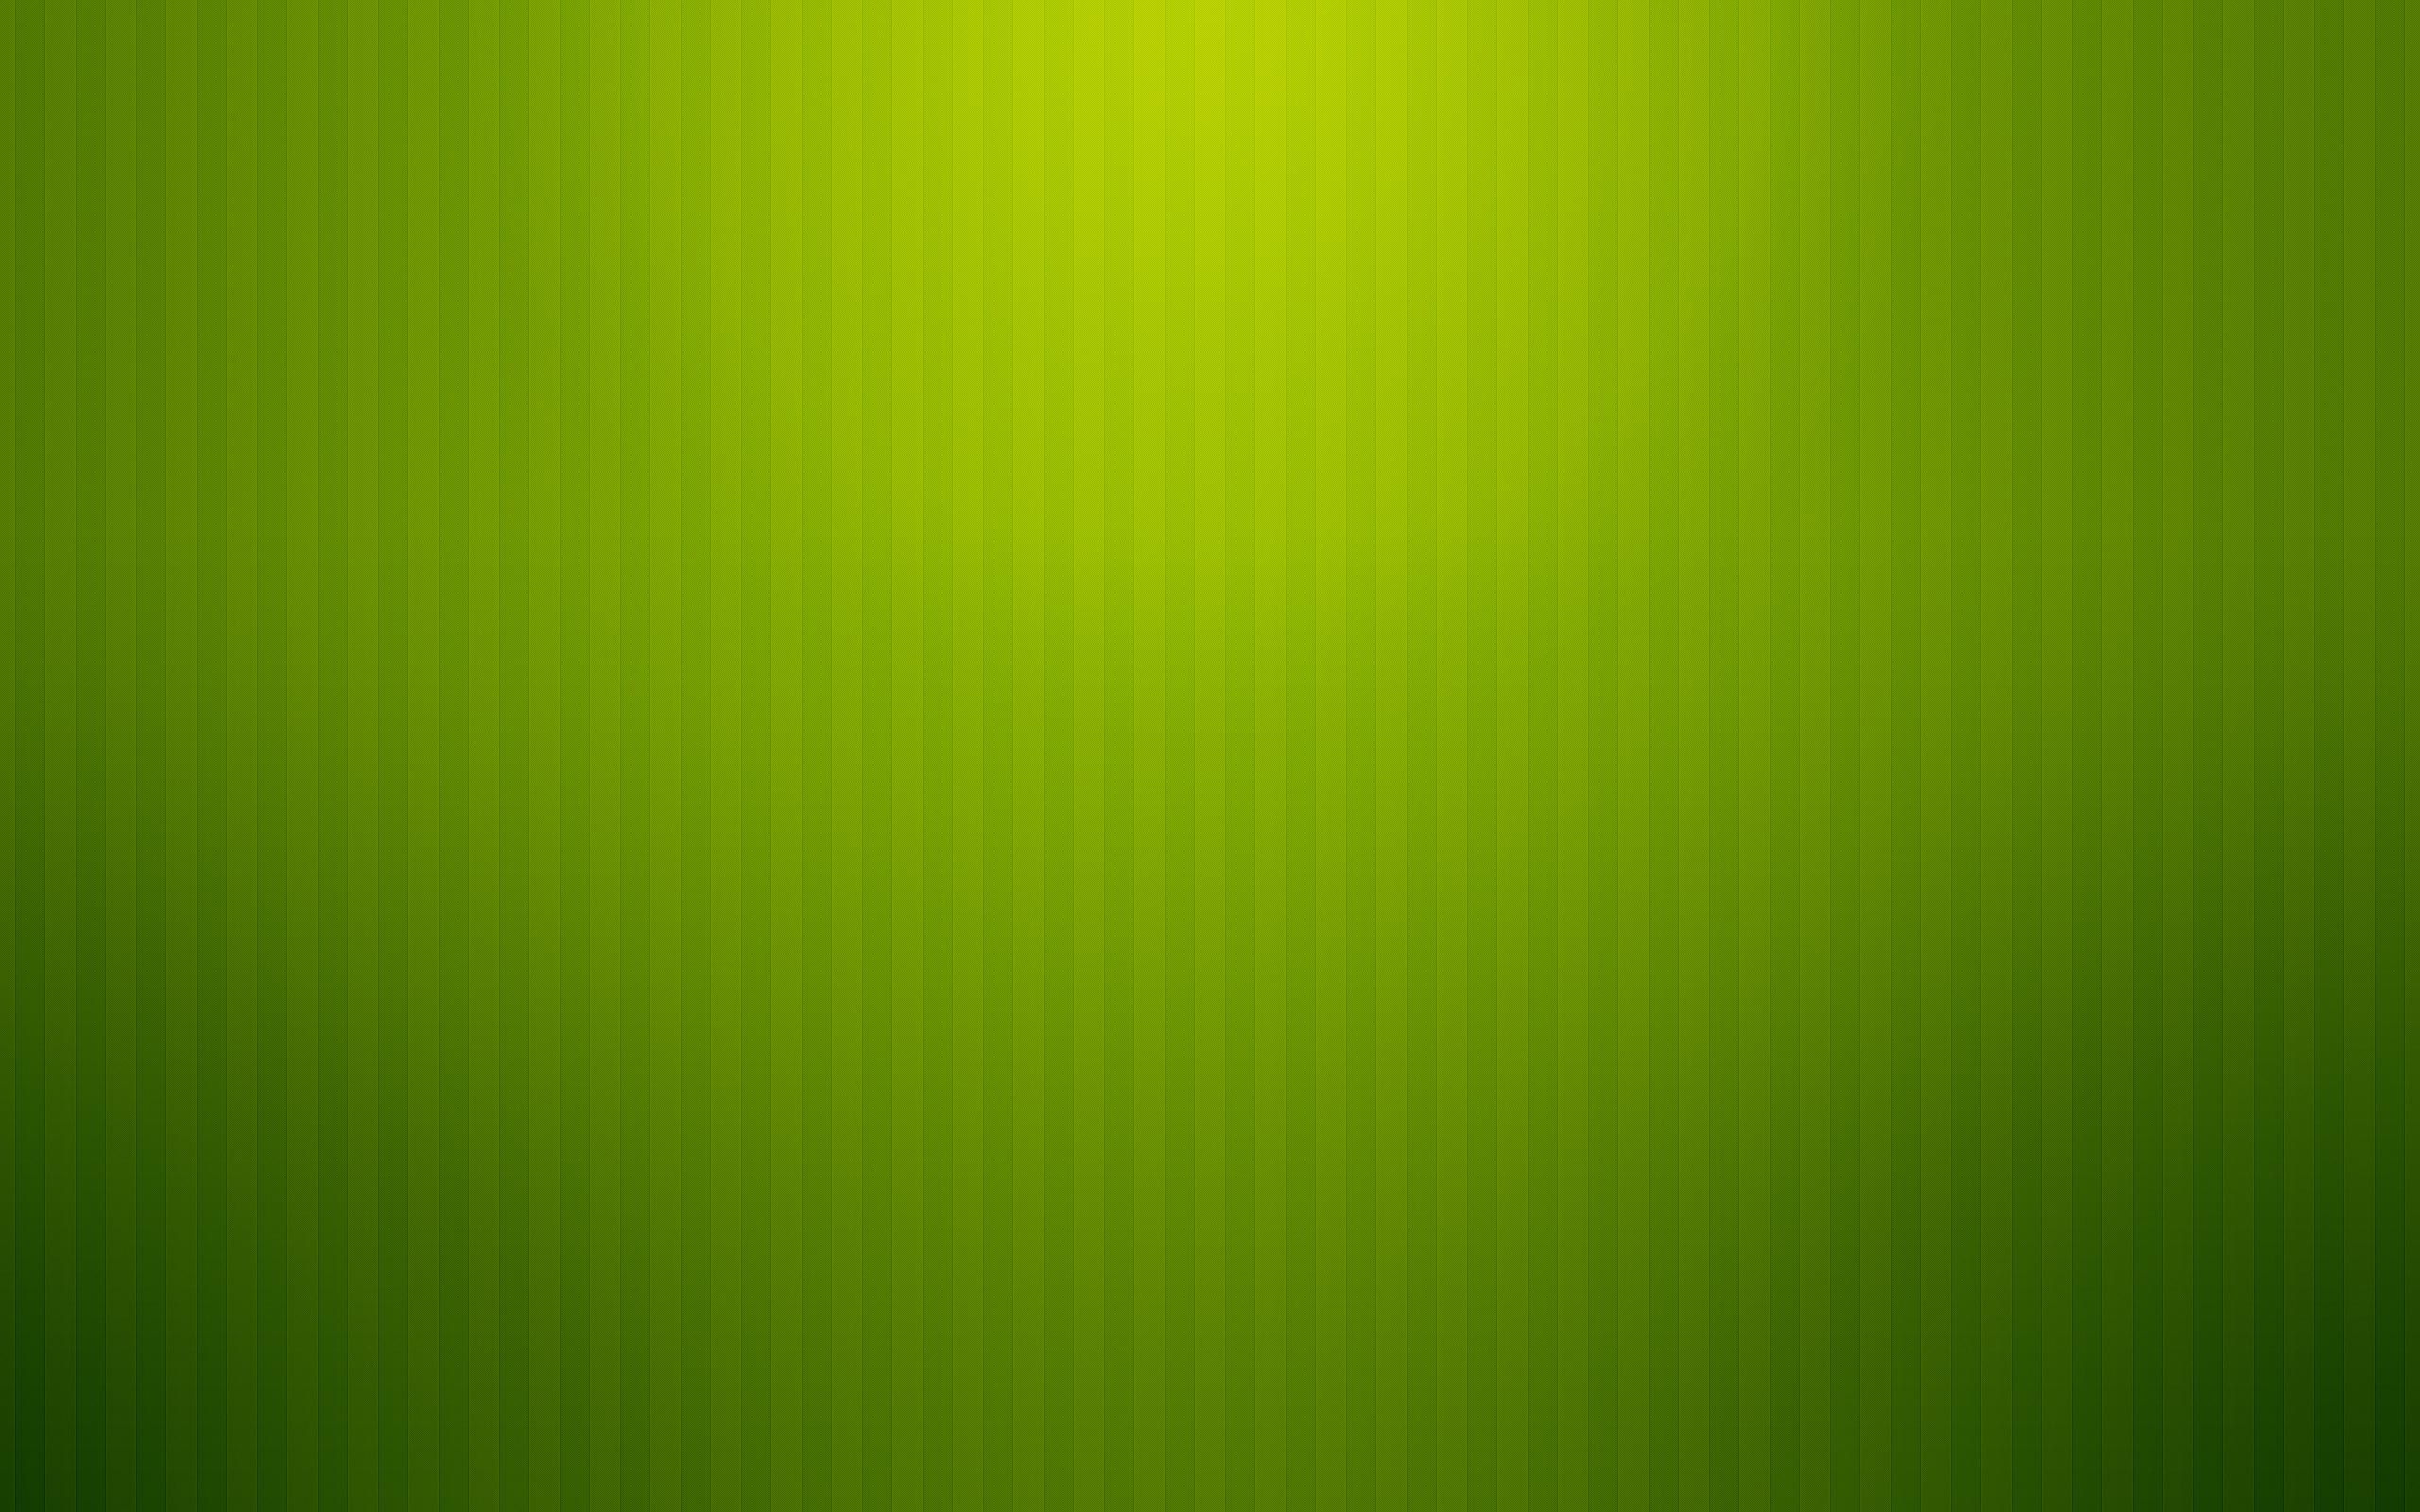 Free Plain Wallpaper 2560x1600 84227